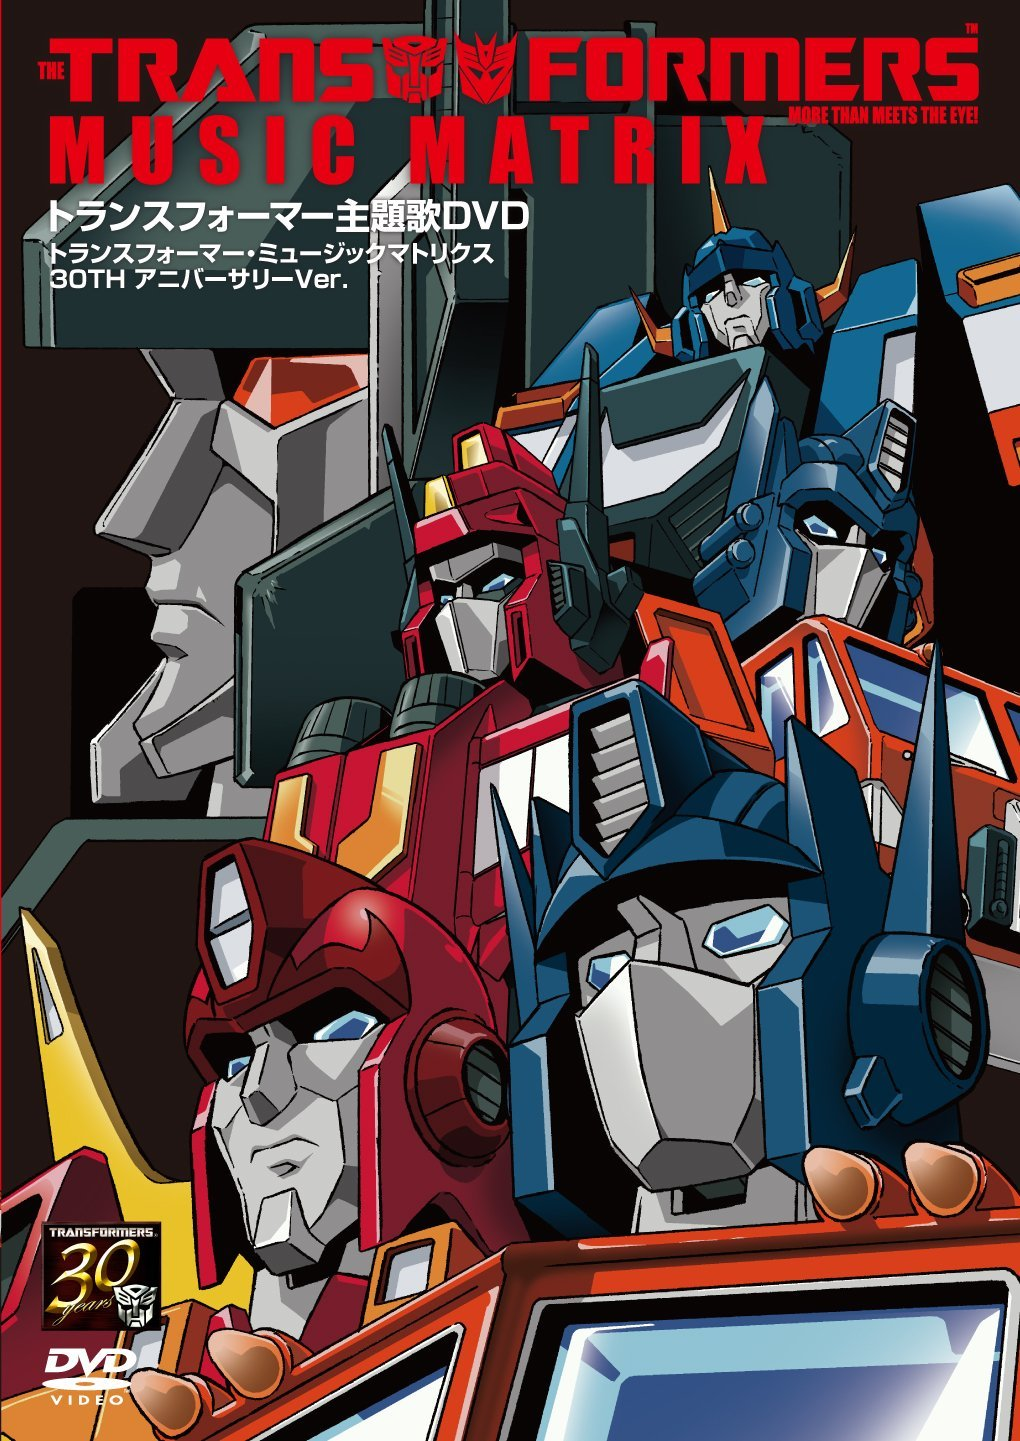 [CD & Vinyle] Bande-sonore/Musiques de Les Transformers Le Film (1986) + série Les Transformers (G1) + TF au Japon 27463852d1409244576-new-japanese-transformers-dvd-cd-preorder-amazon-jp-8123wftgo6l_sl1500__1409262523